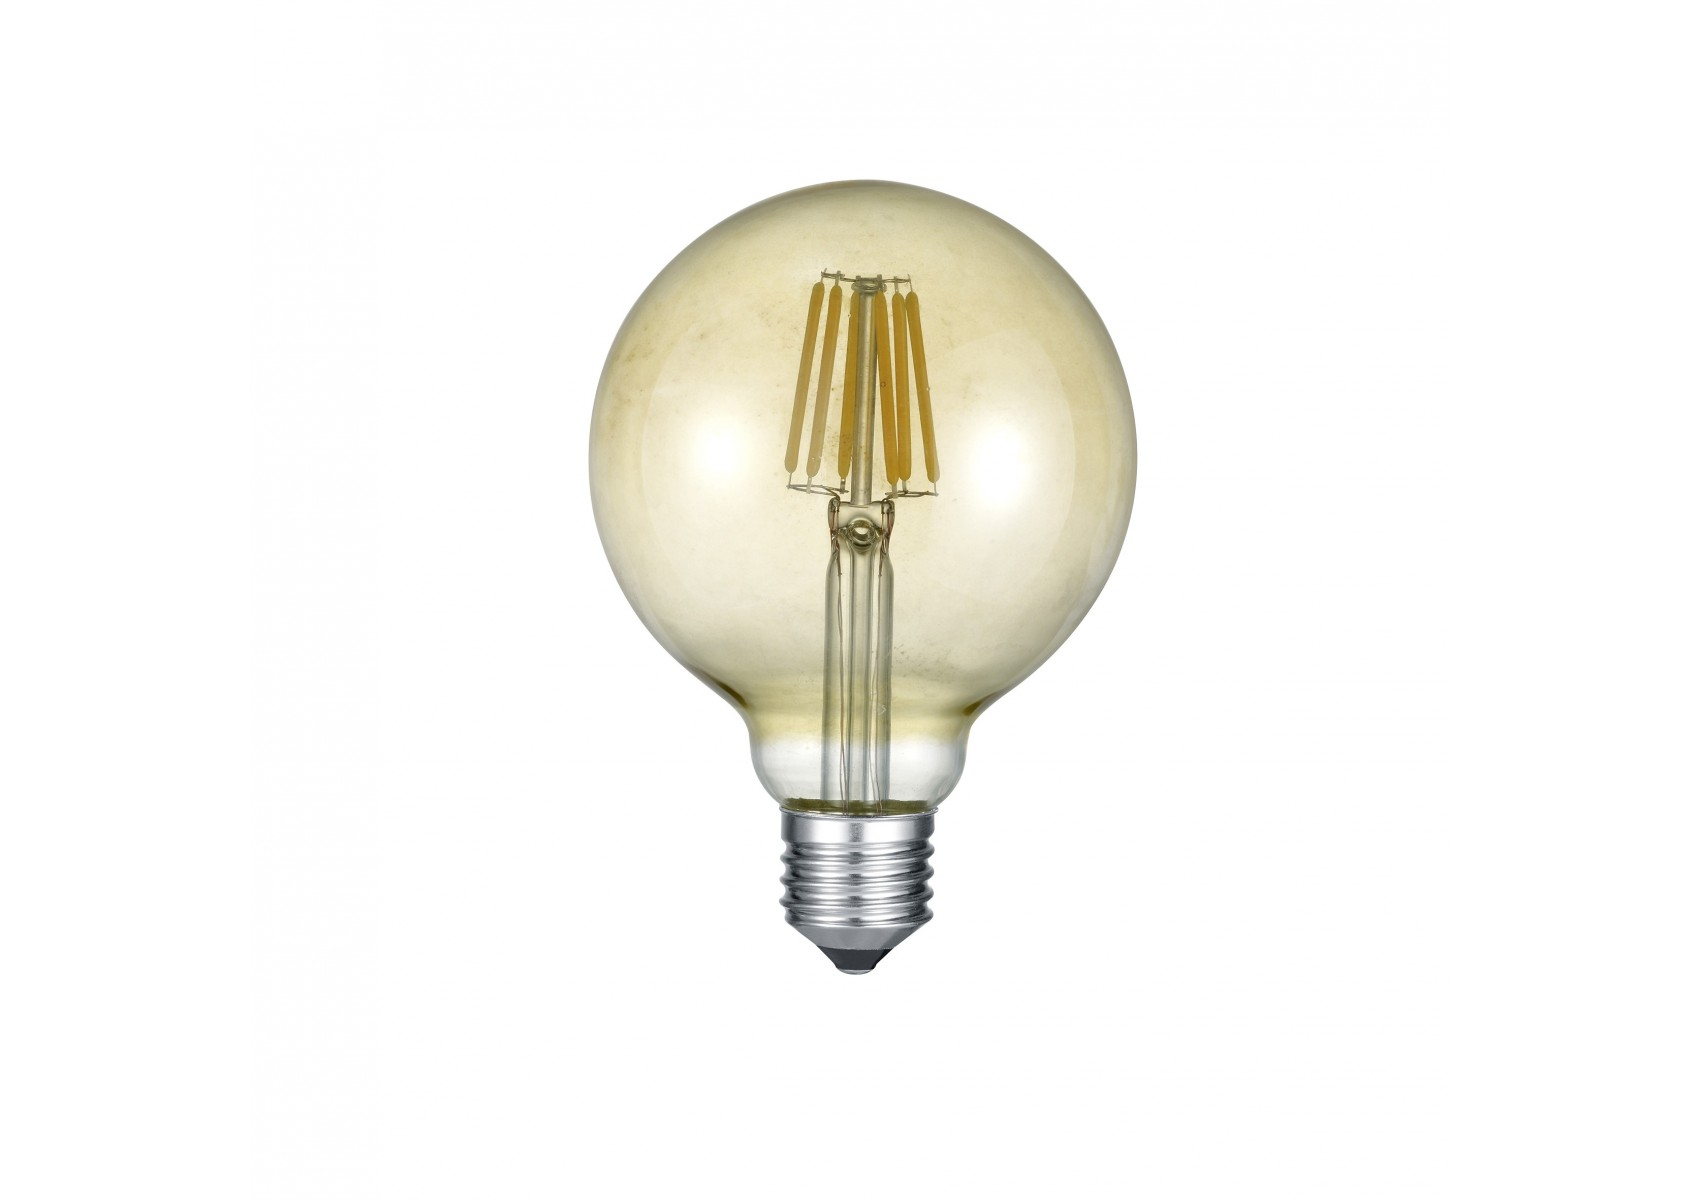 ampoule globe led e27 d co filament 420 lm 6w jaune boite design. Black Bedroom Furniture Sets. Home Design Ideas